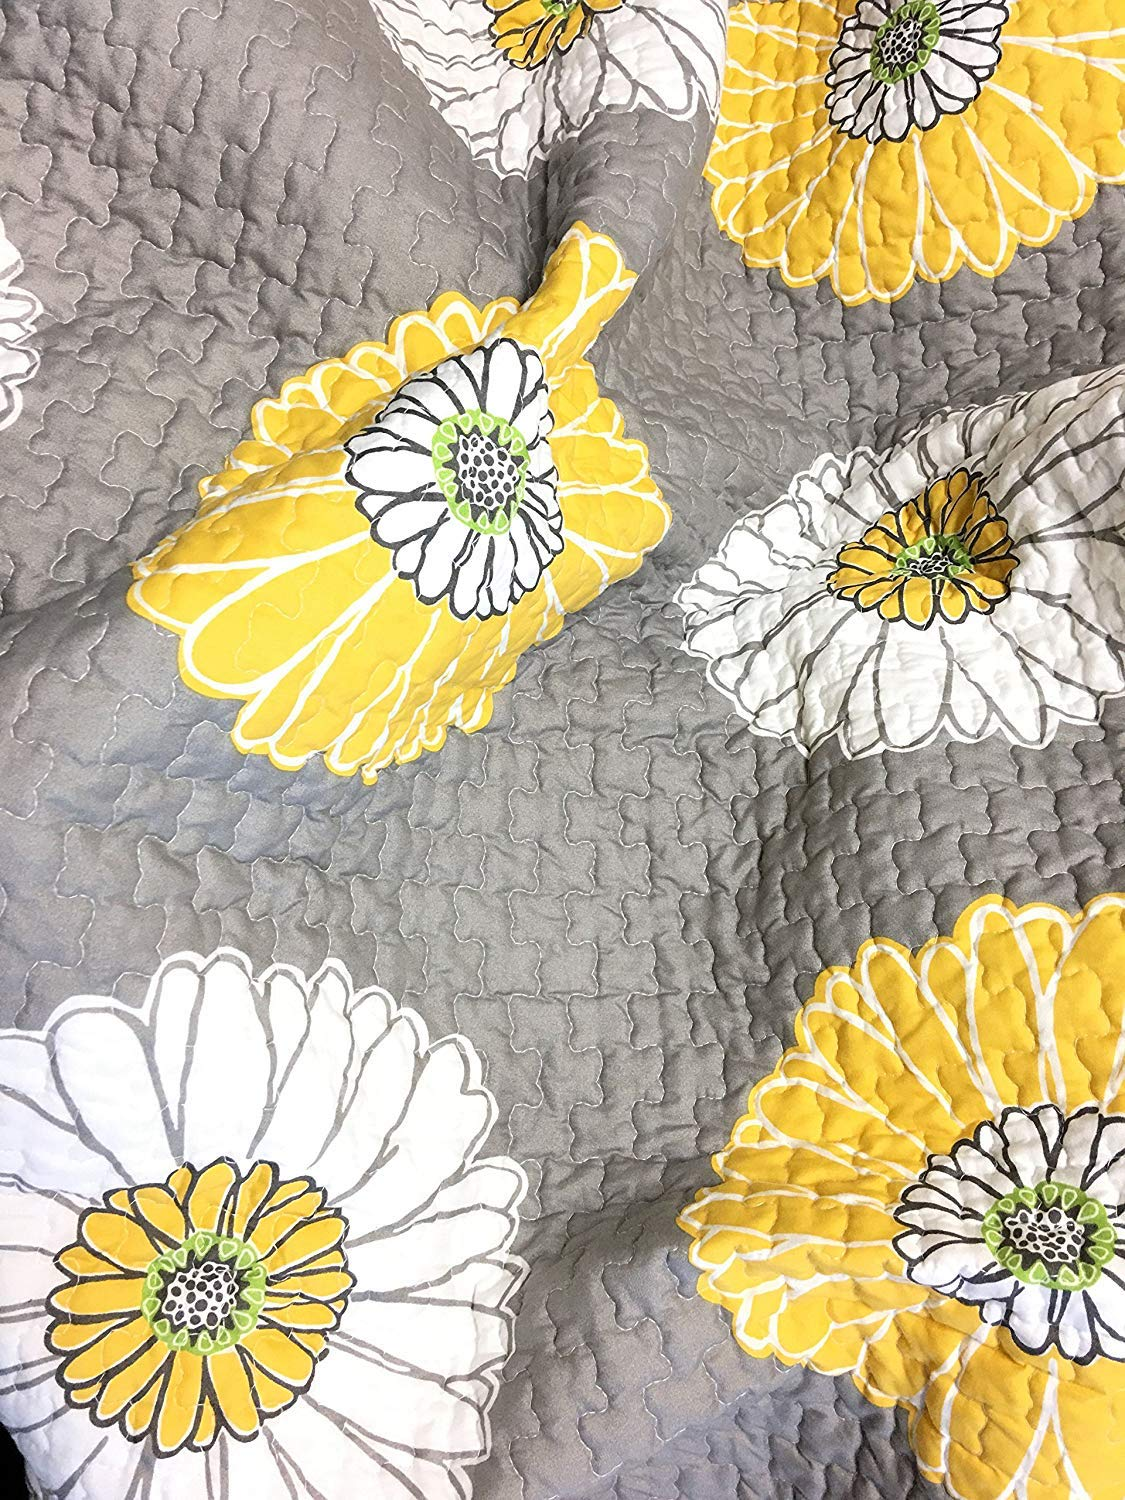 Miss daisy dove gray floral quilt set sunshine yellow and white spring flowers miss daisy dove gray floral quilt set sunshine yellow and white spring flowers mightylinksfo